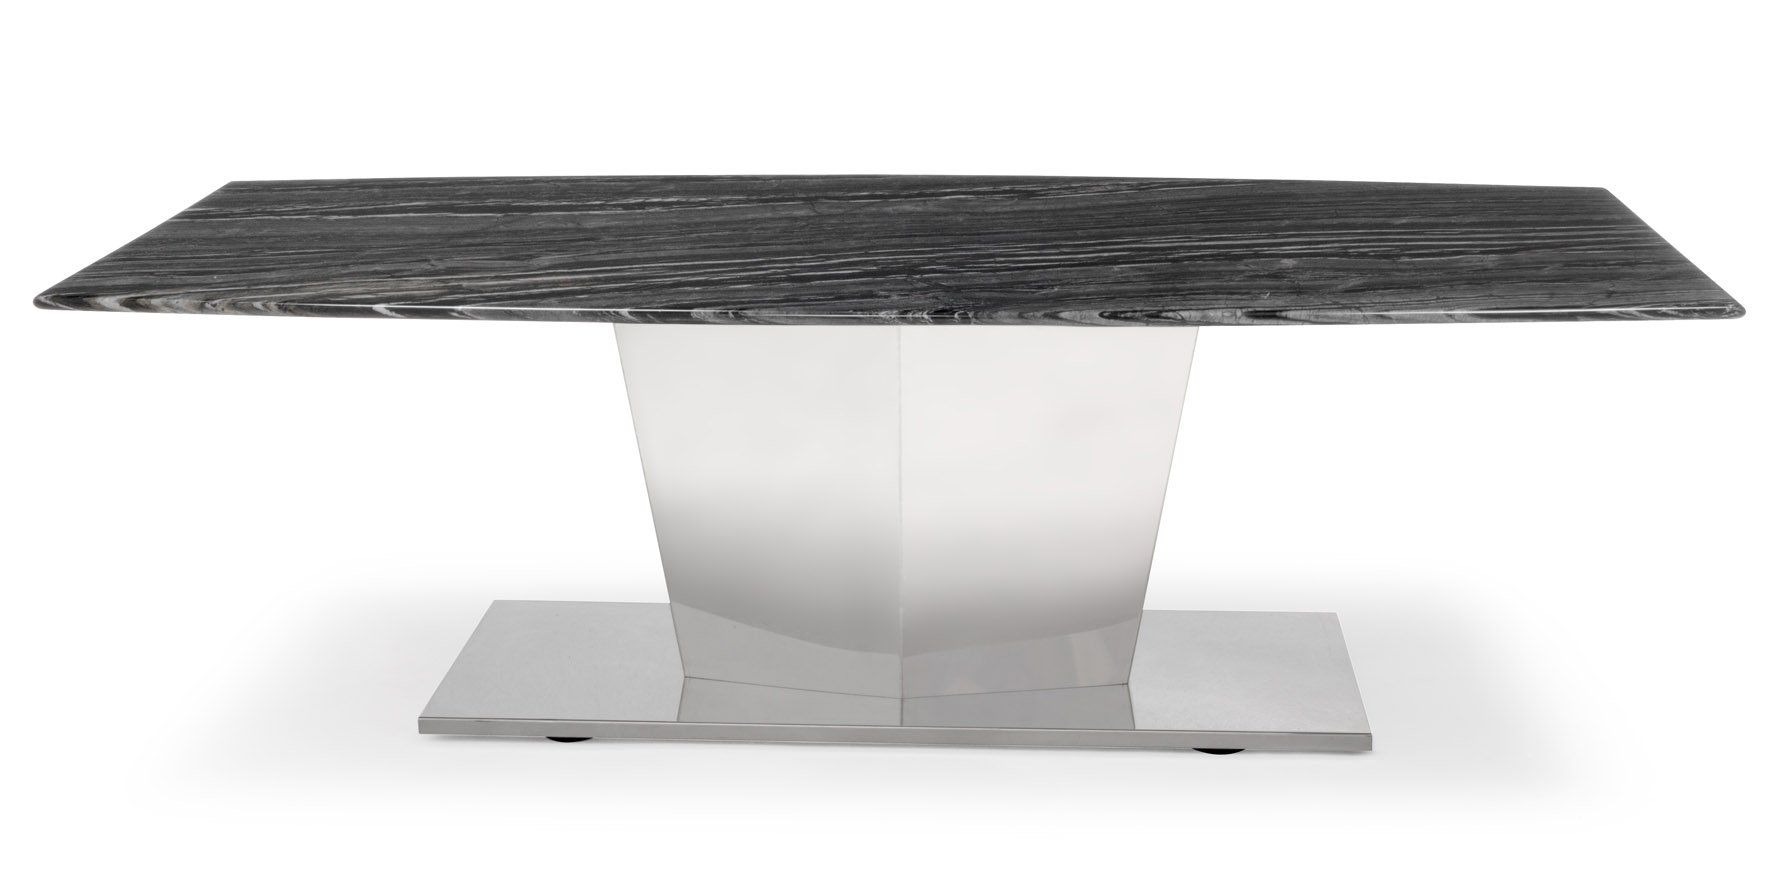 Zuri Furniture Black And White Marble Brushed Stainless Steel Sirah Coffee Table Mak Black And White Marble Brushed Stainless Steel Modern Contemporary Home [ 870 x 1778 Pixel ]